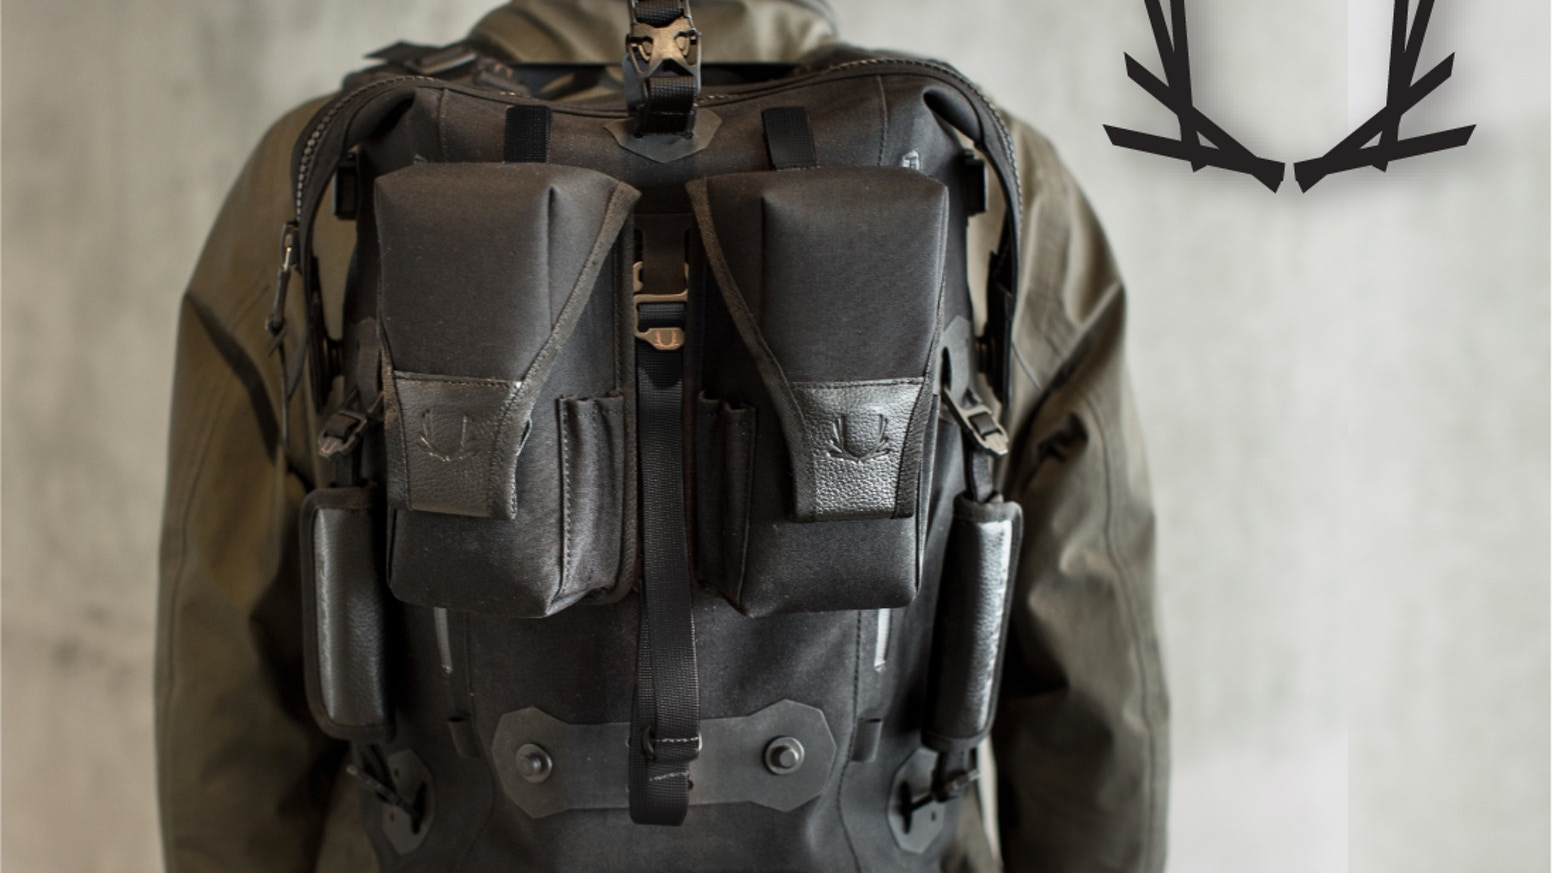 26d43be396b6 EMBER EQUIPMENT - MODULAR URBAN BACKPACK. Inspired by the outdoors